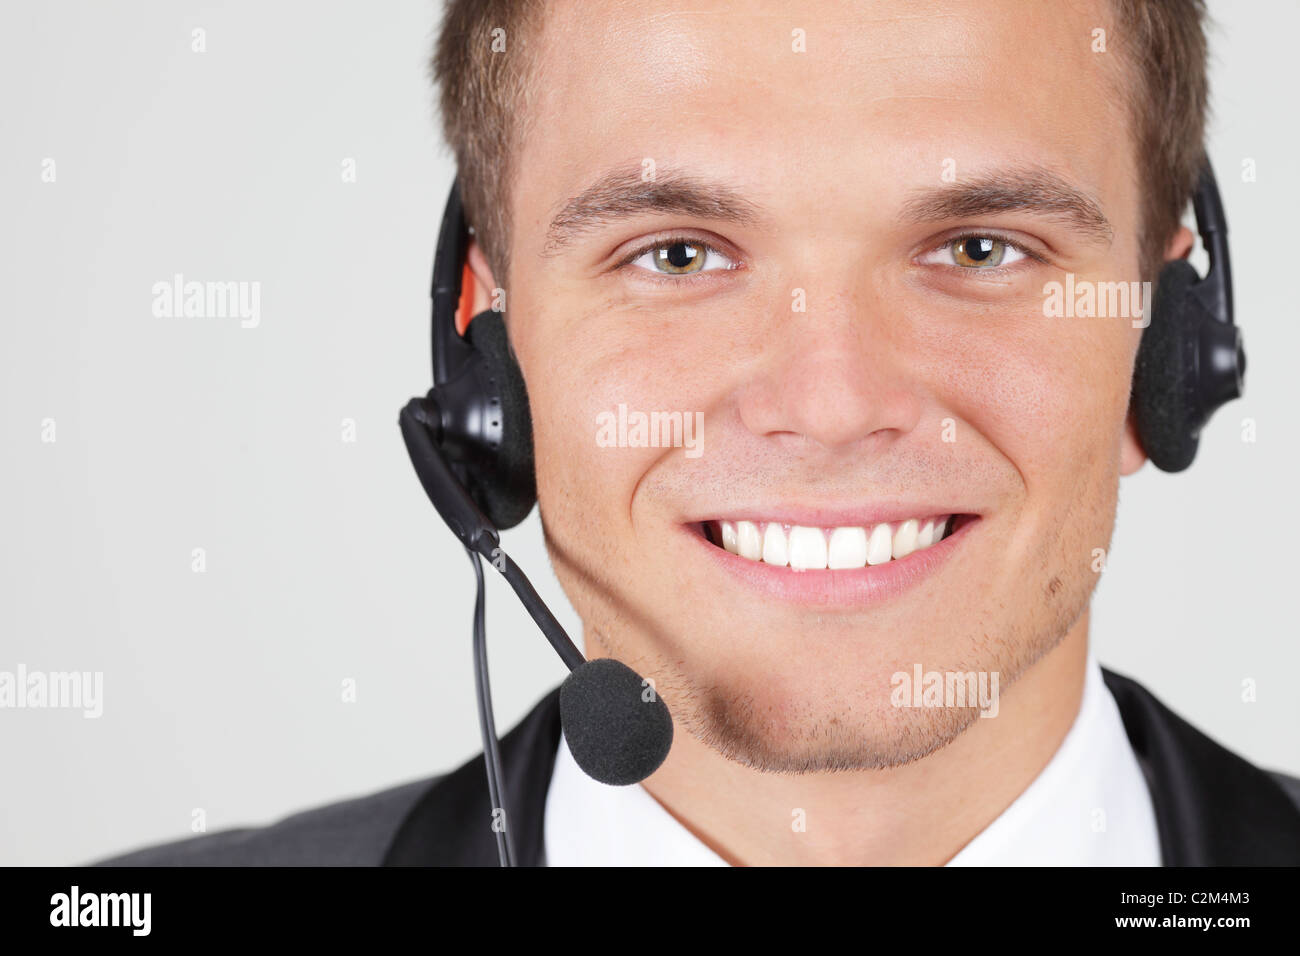 Customer support operator woman smiling isolated - Stock Image